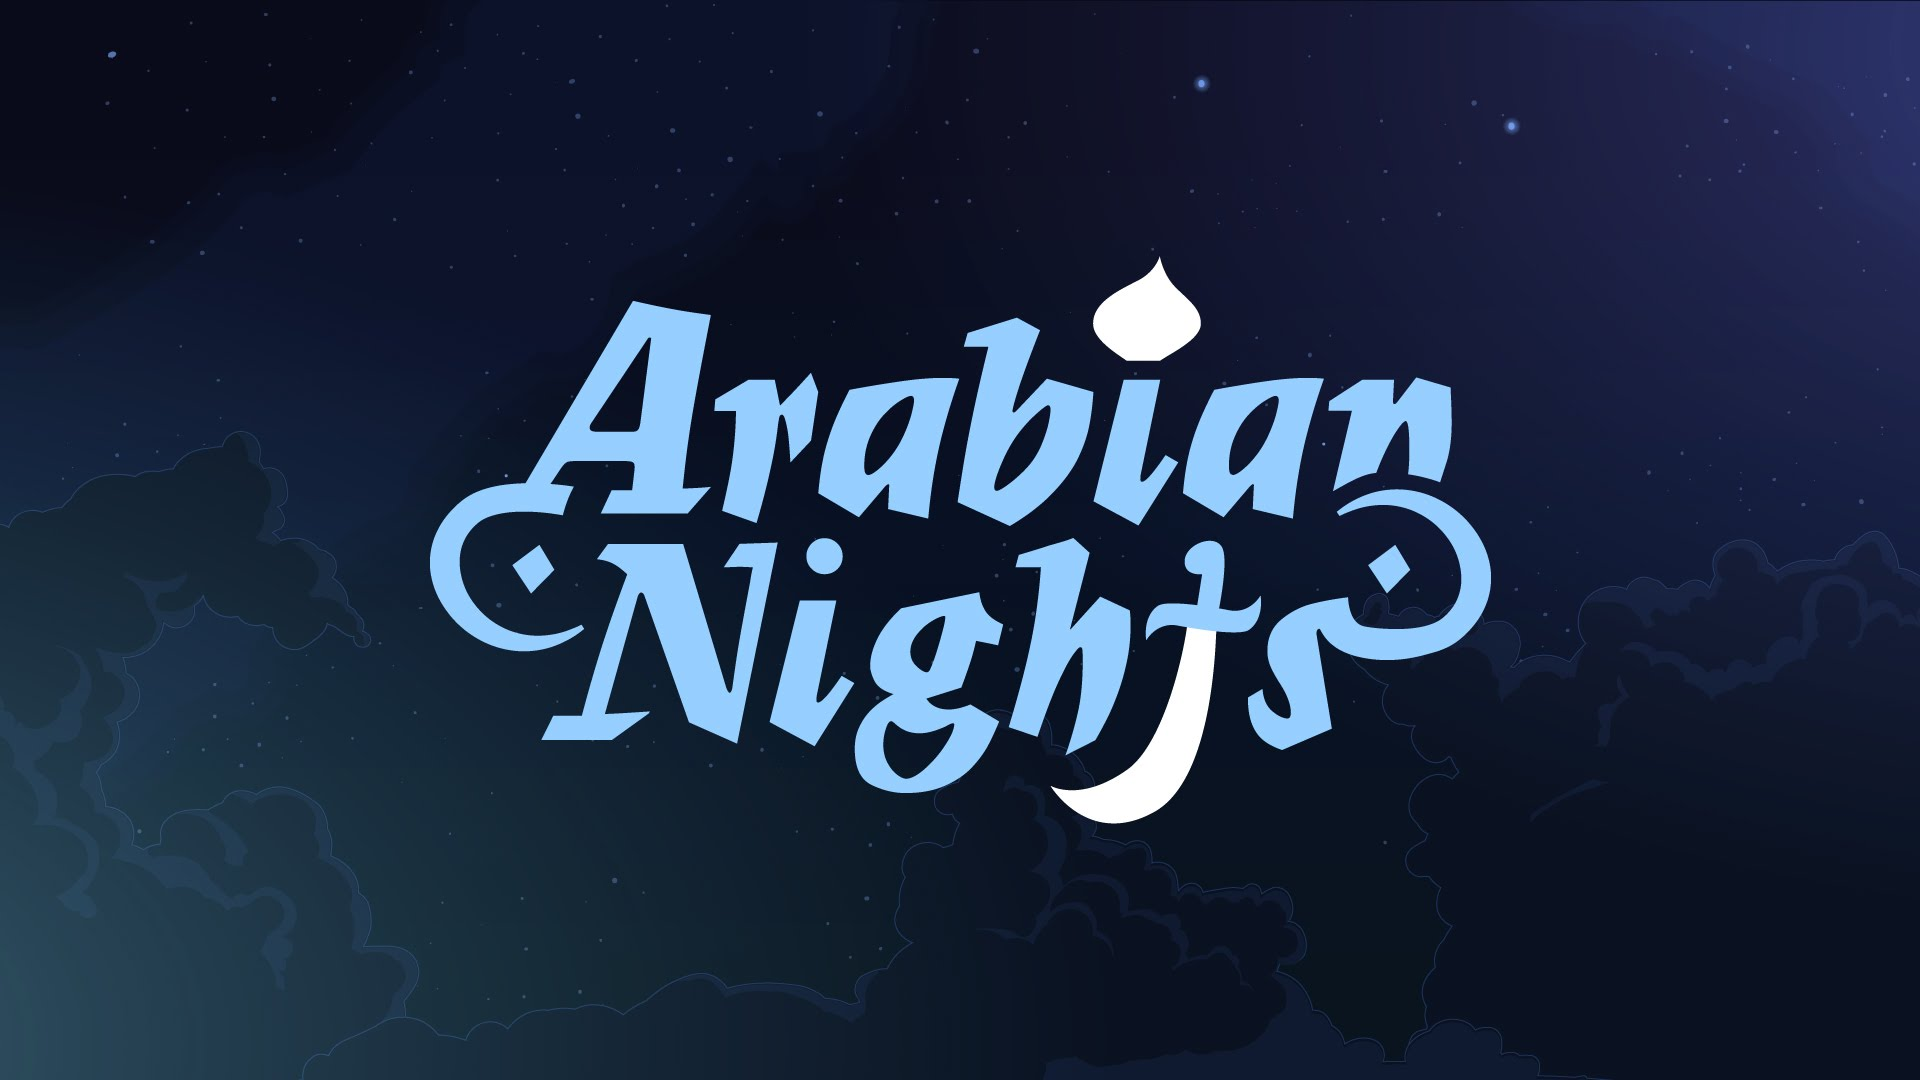 High Resolution Wallpaper | Arabien Nights 1920x1080 px